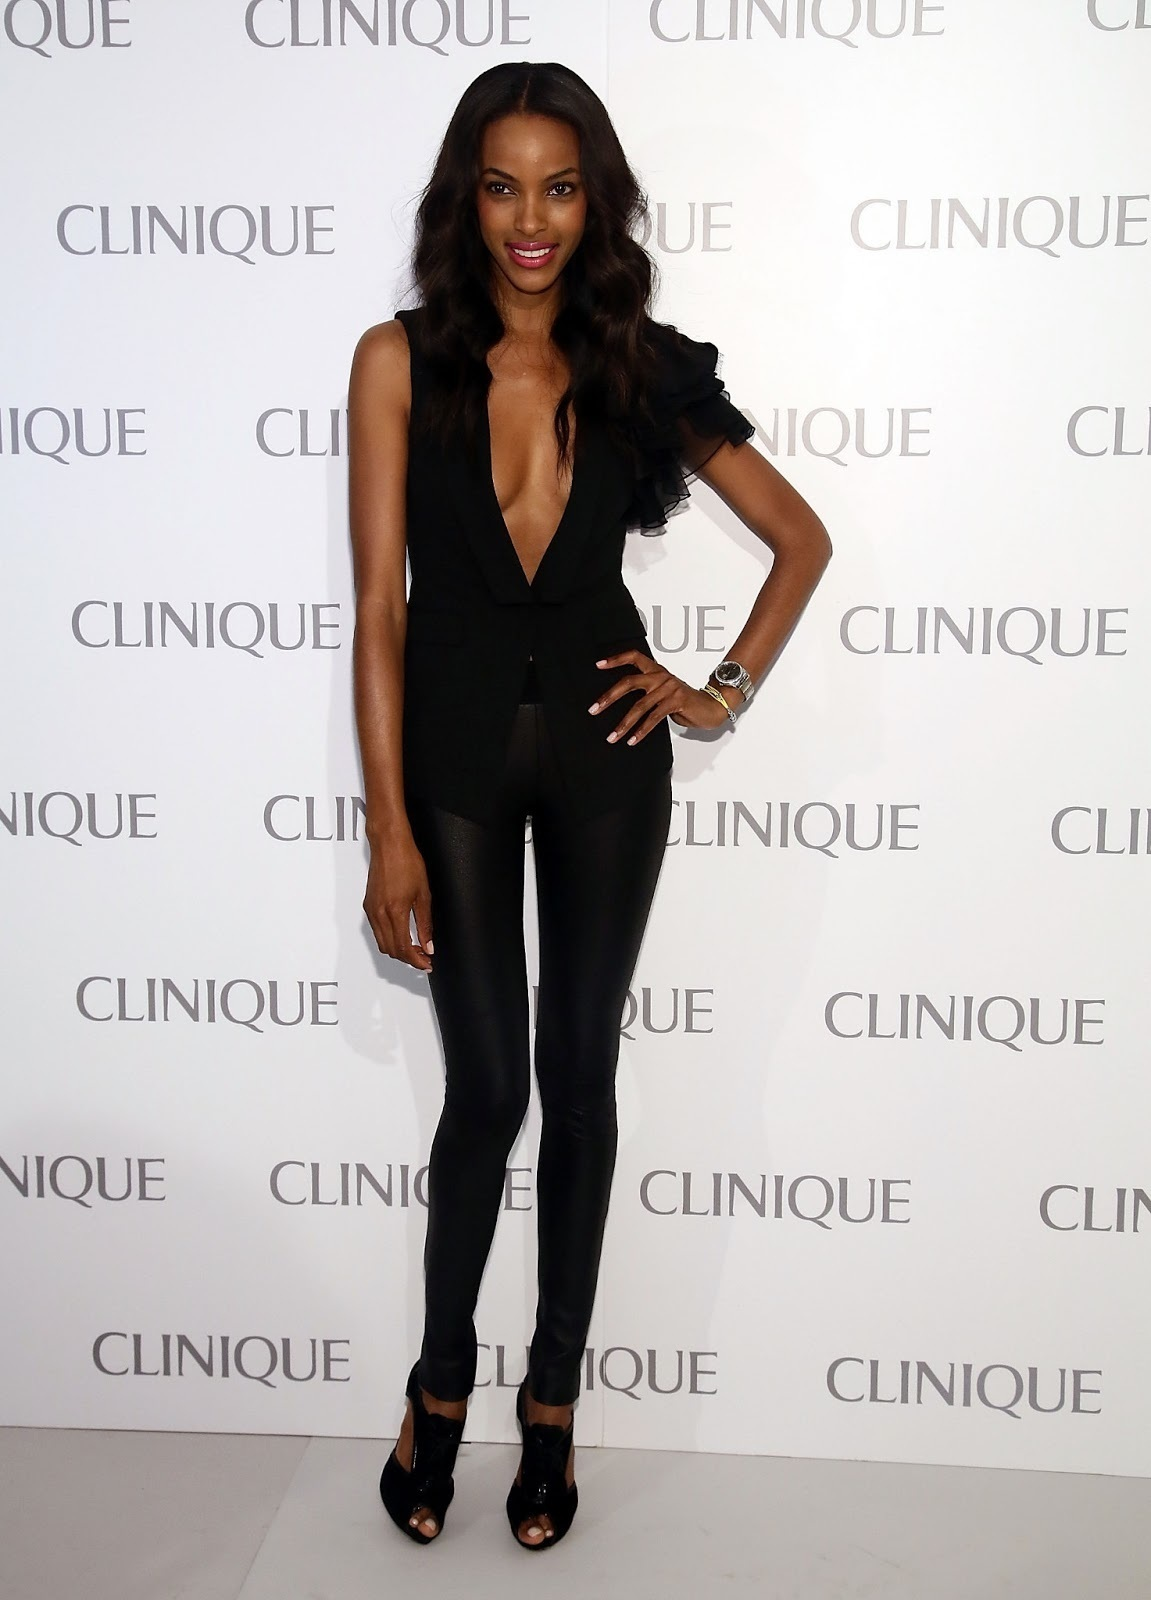 Cindy Bruna 	6 	2013?resent pictures